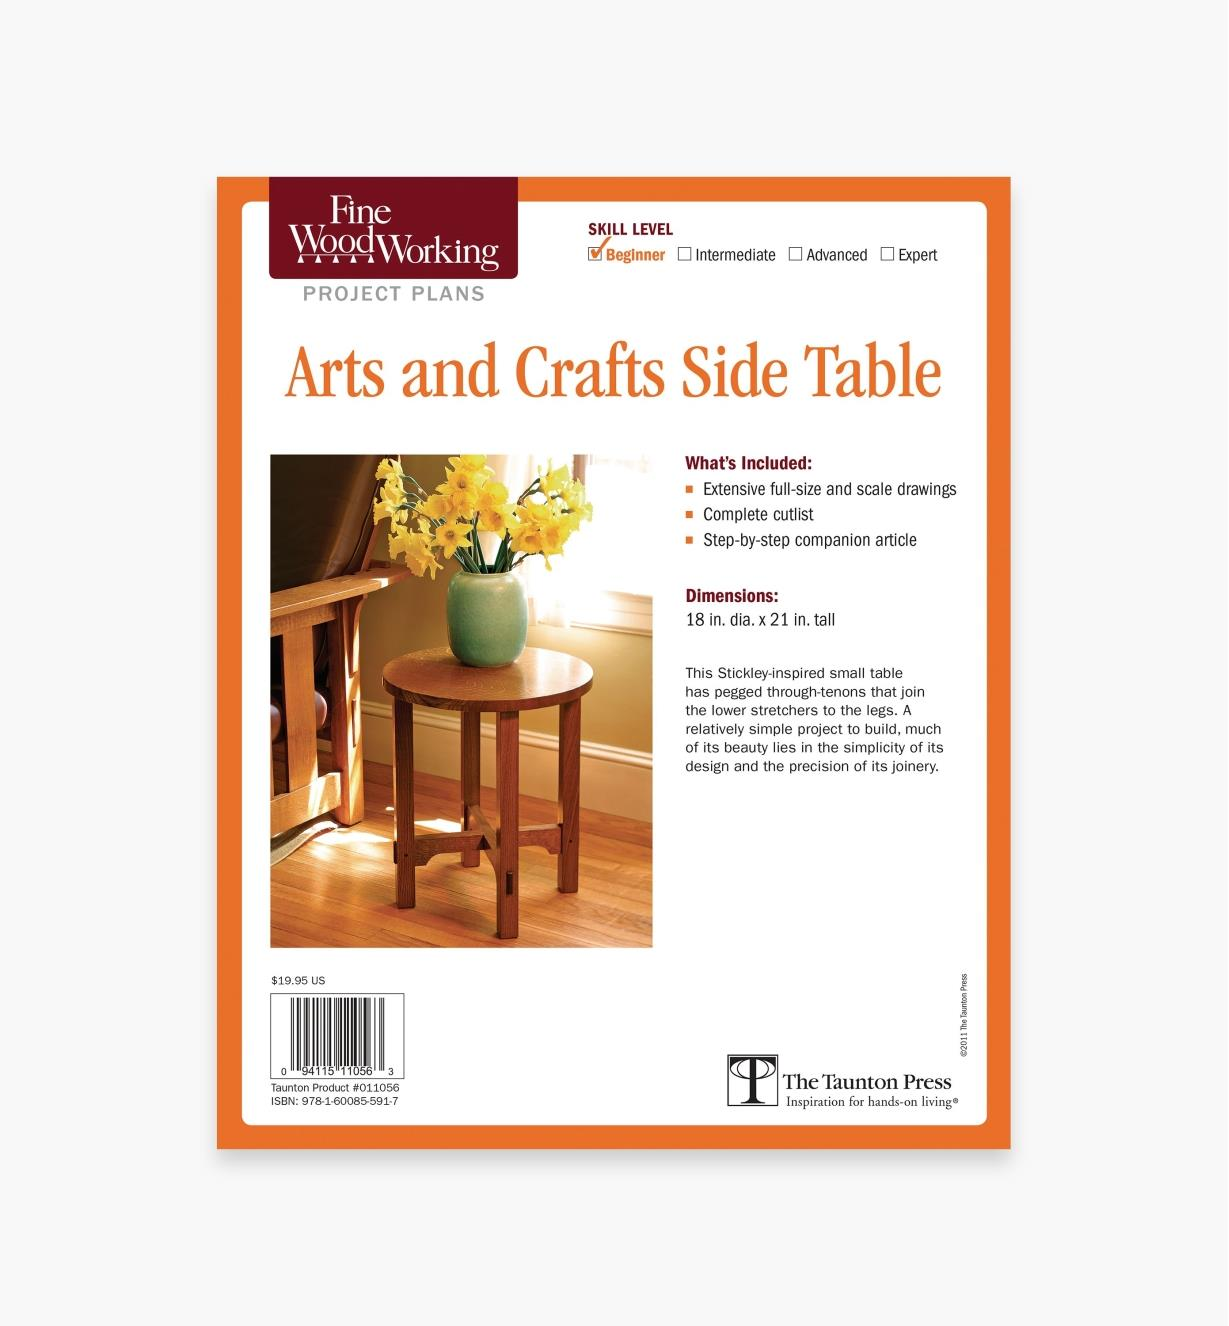 73L2524 - Arts and Crafts Side Table Plan